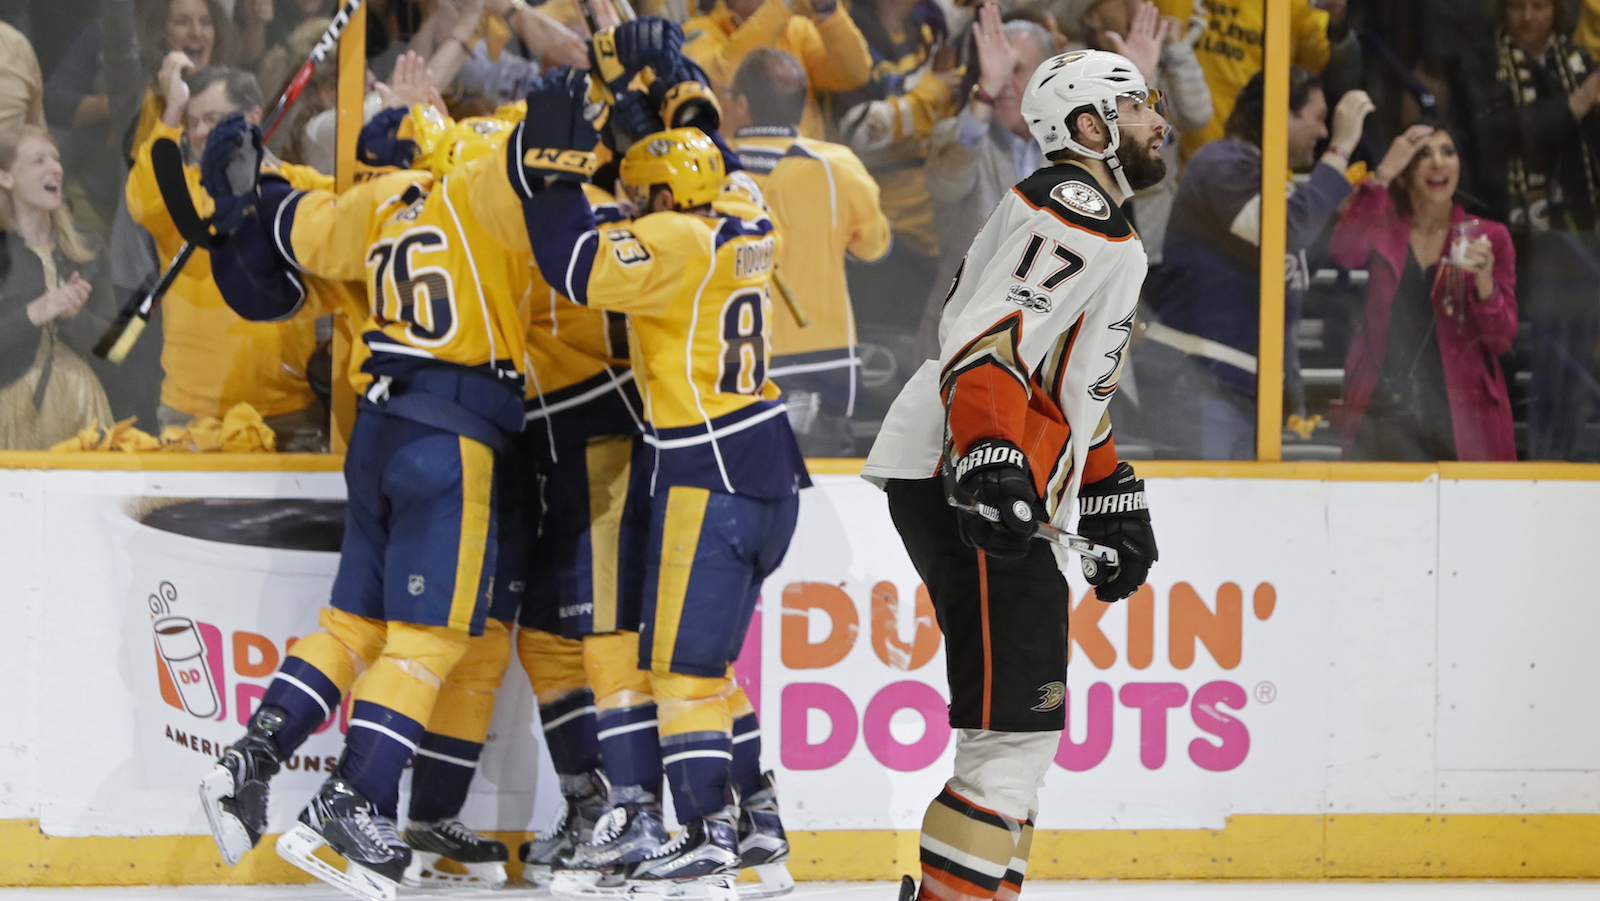 Anaheim Ducks center Ryan Kesler (17) skates past as Nashville Predators players celebrate an empty-net goal during the third period in Game 6 of the Western Conference final in the NHL hockey Stanley Cup playoffs Monday, May 22, 2017, in Nashville, Tenn. (AP Photo/Mark Humphrey)